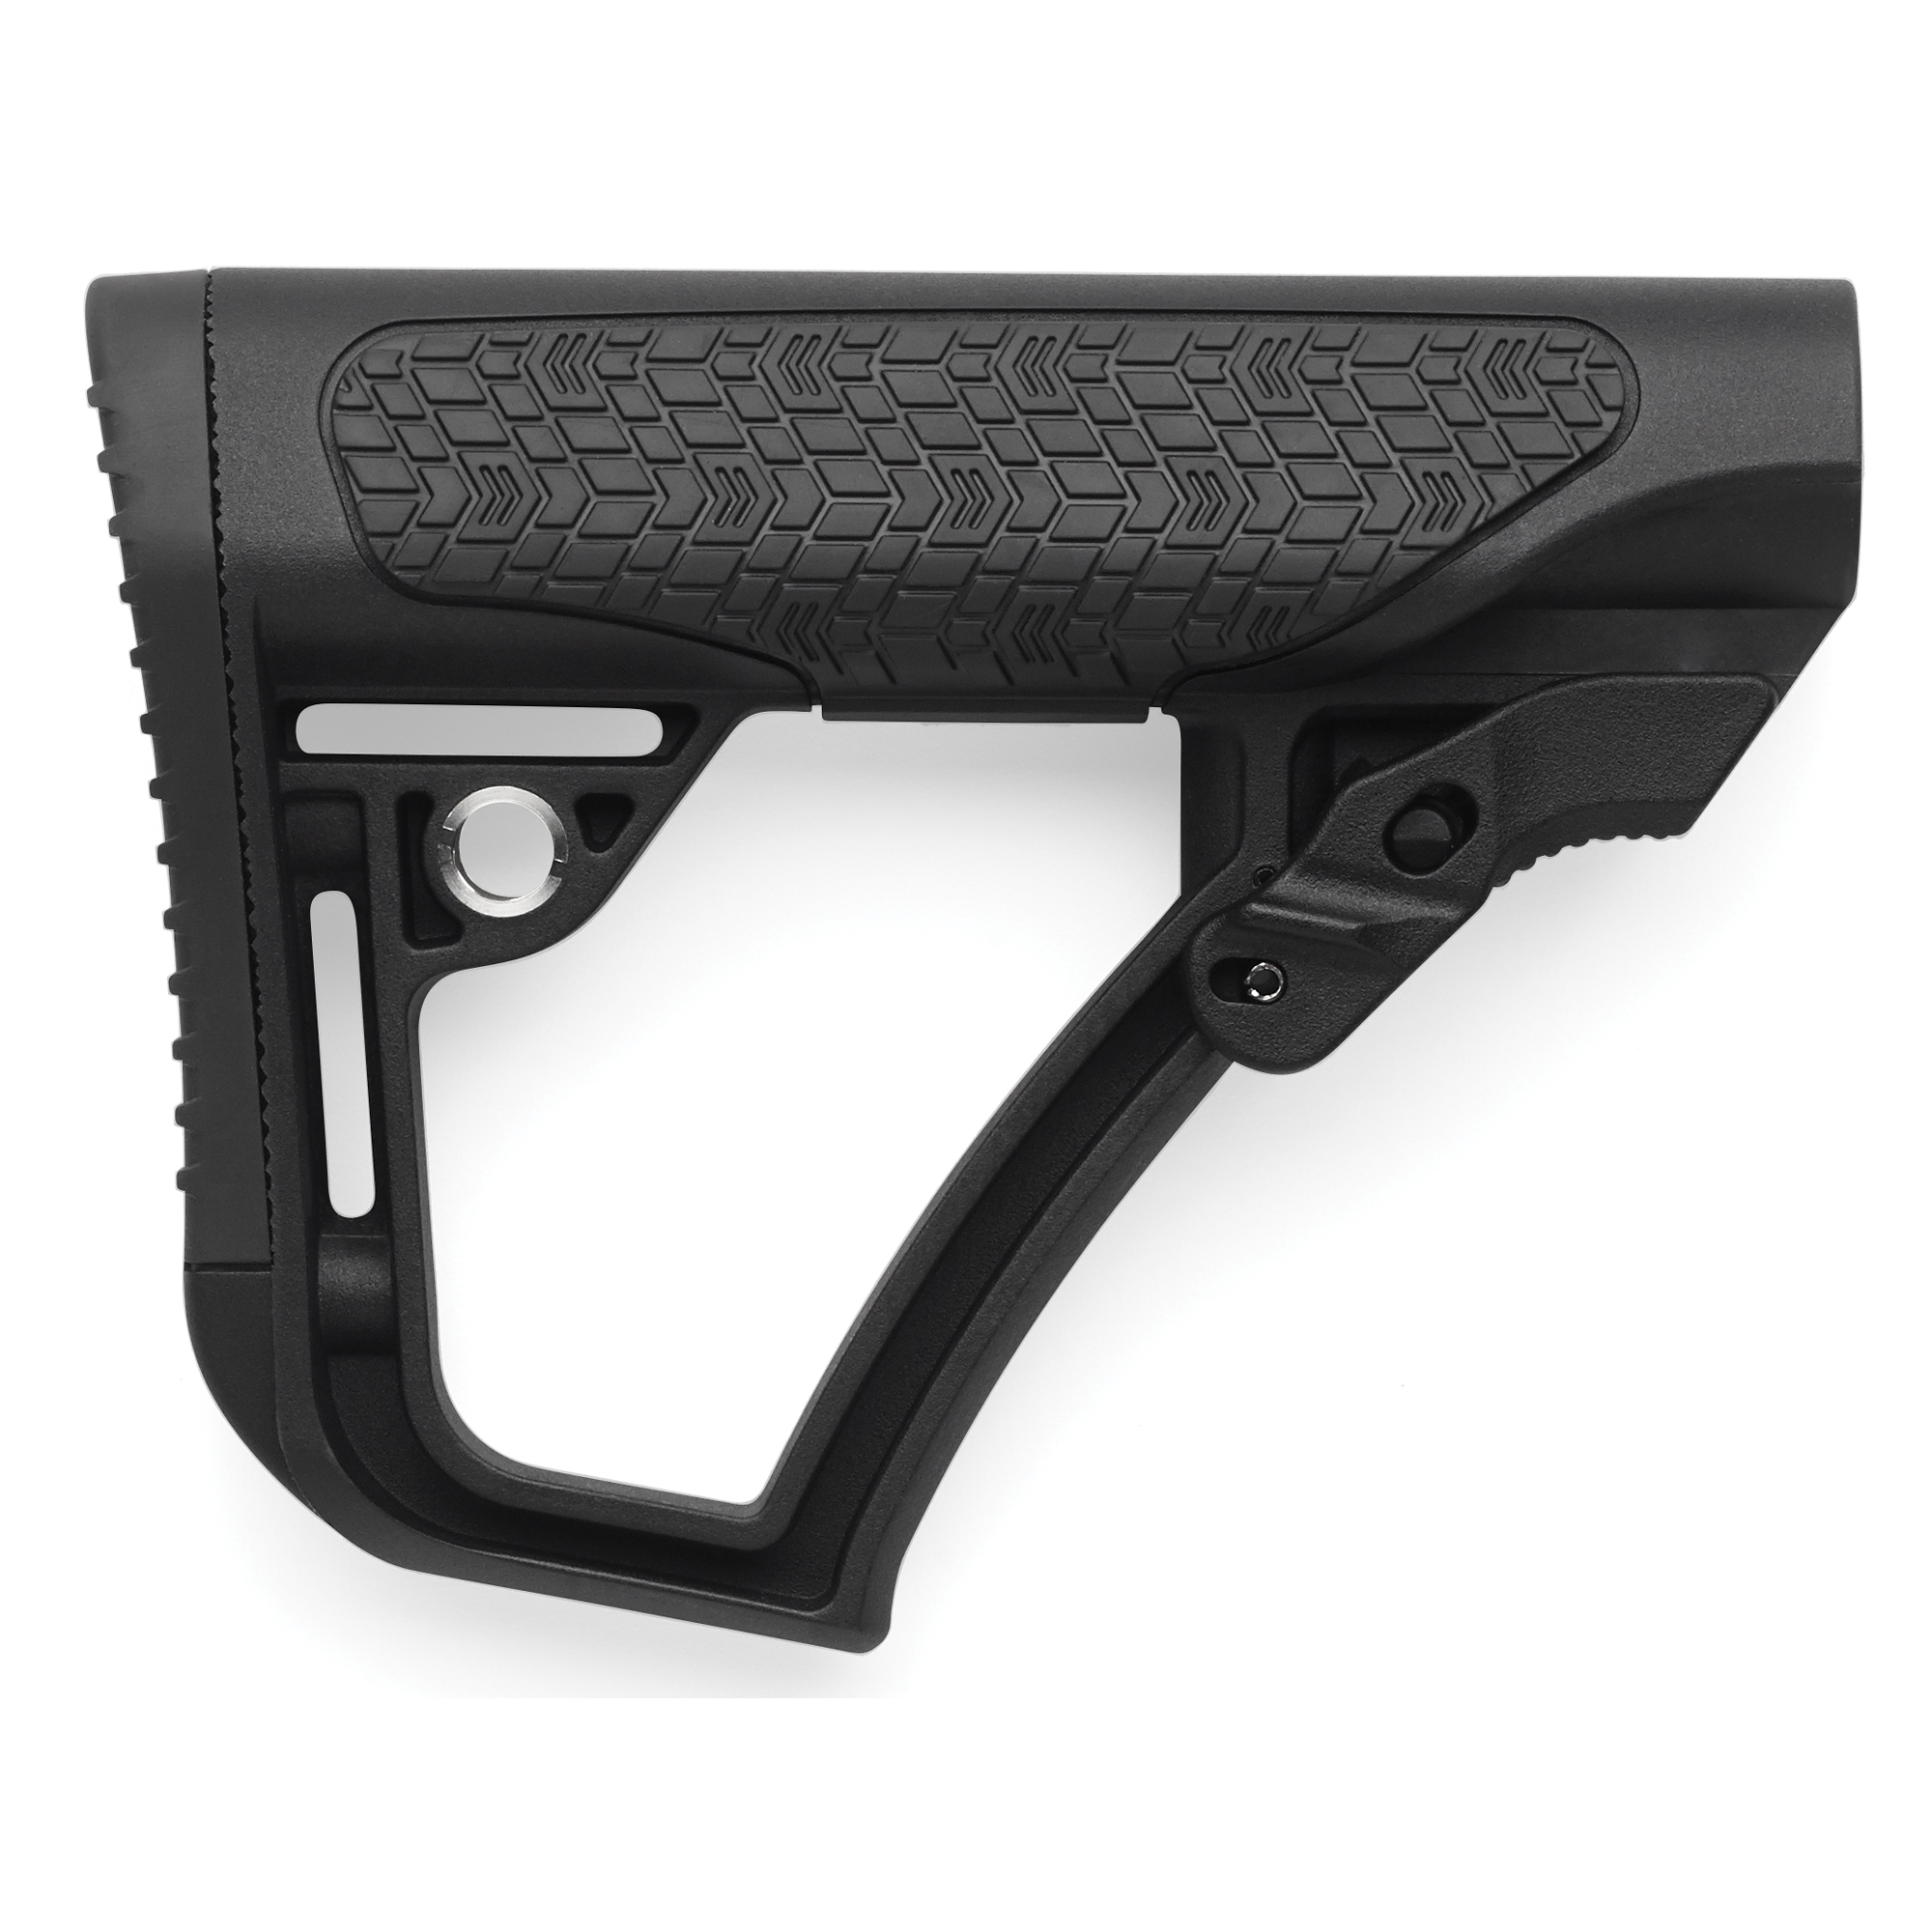 "Daniel Defense's Collapsible Mil-Spec Collapsible Buttstock is constructed of a proprietary blend of glass infused polymers and finished off with soft touch rubber overmolding in strategic points. The new buttstock is precision formed for mil-spec receiver extensions to have very little forward or lateral play that is so common in many other buttstocks. This eliminates the need for a tensioning device or friction lock. All of this results in a durable buttstock that will give the shooter a comfortable and repeatable cheek weld and unprecedented control of the firearm. The buttstock can be run with one of two included buttpads or without any buttpad at all to custom fit the rifle to whatever gear the operator must wear. The buttpads come in two sizes: a thicker convex shape (0.8"")"" and a thinner concave shape (0.5""); designed to keep from snagging when shouldering the rifle. Limited rotation QD swivel attachment points are integrated on both sides of the buttstock for ambidextrous sling connection."